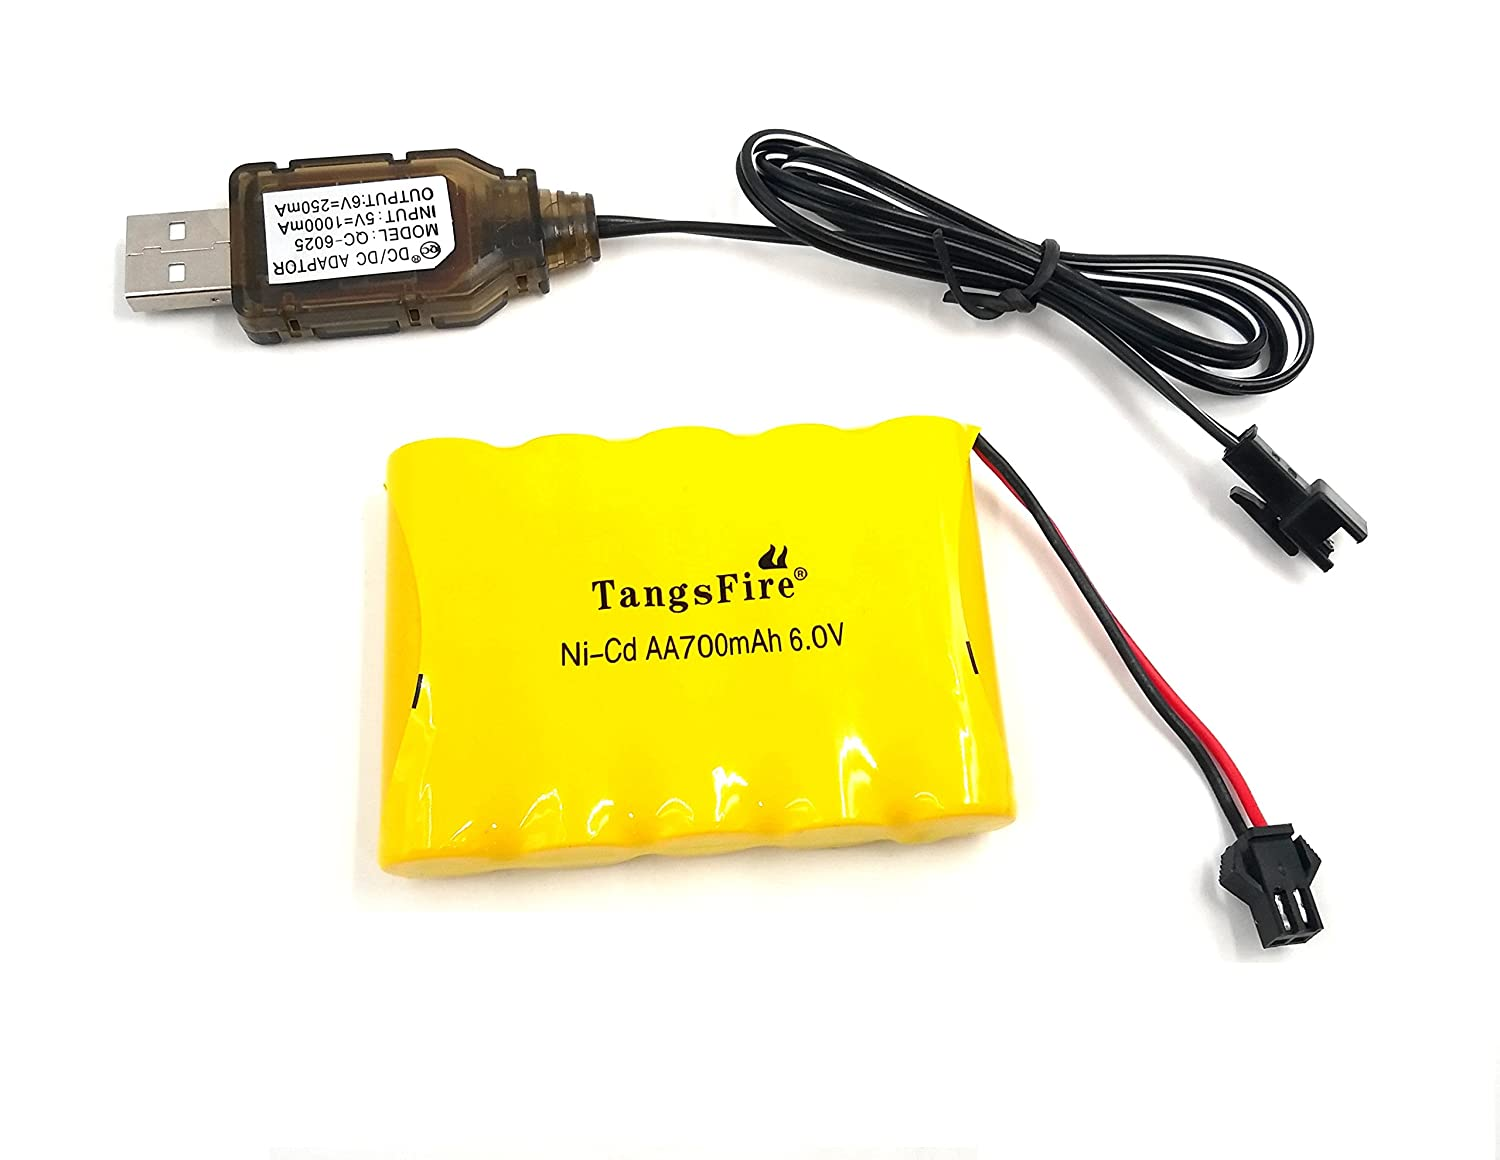 Tangsfire Batería Recargable 6V 700mAh AA Ni-CD Packs SM 2P Plug para Juguetes Power Bank + Cargador